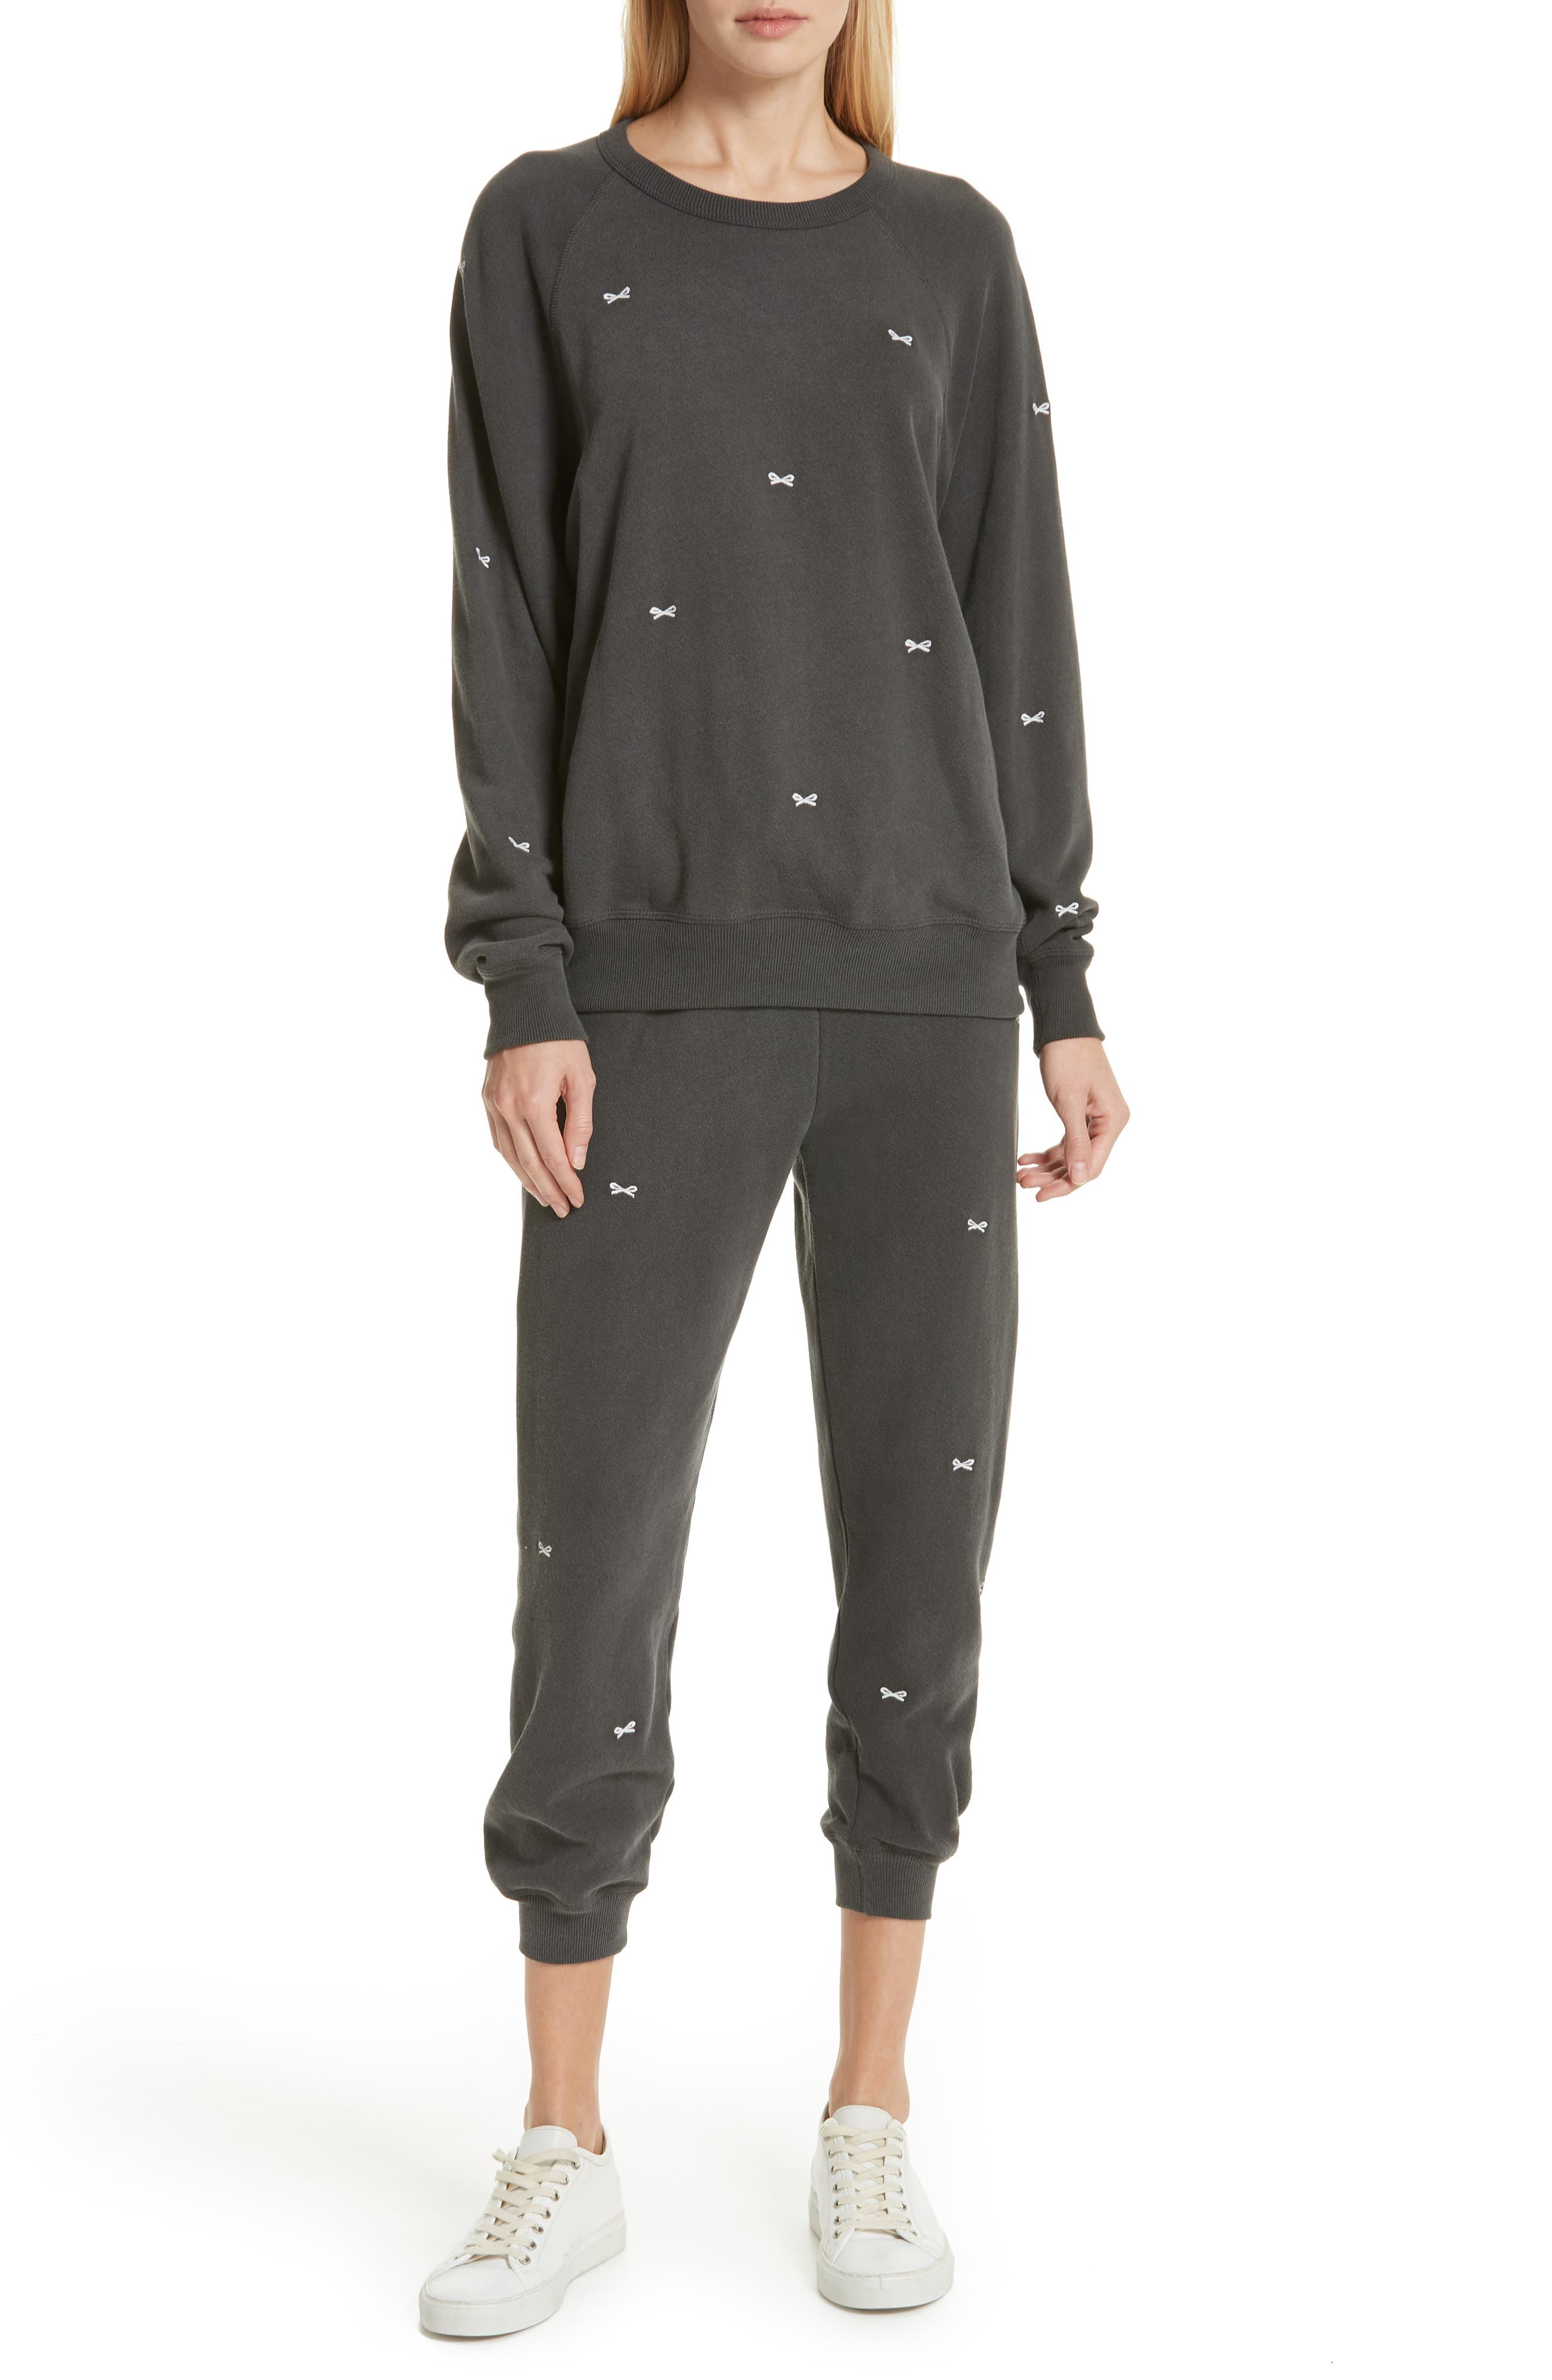 The Cropped Sweatpants,                             Alternate thumbnail 7, color,                             WASHED BLACK/ WHITE